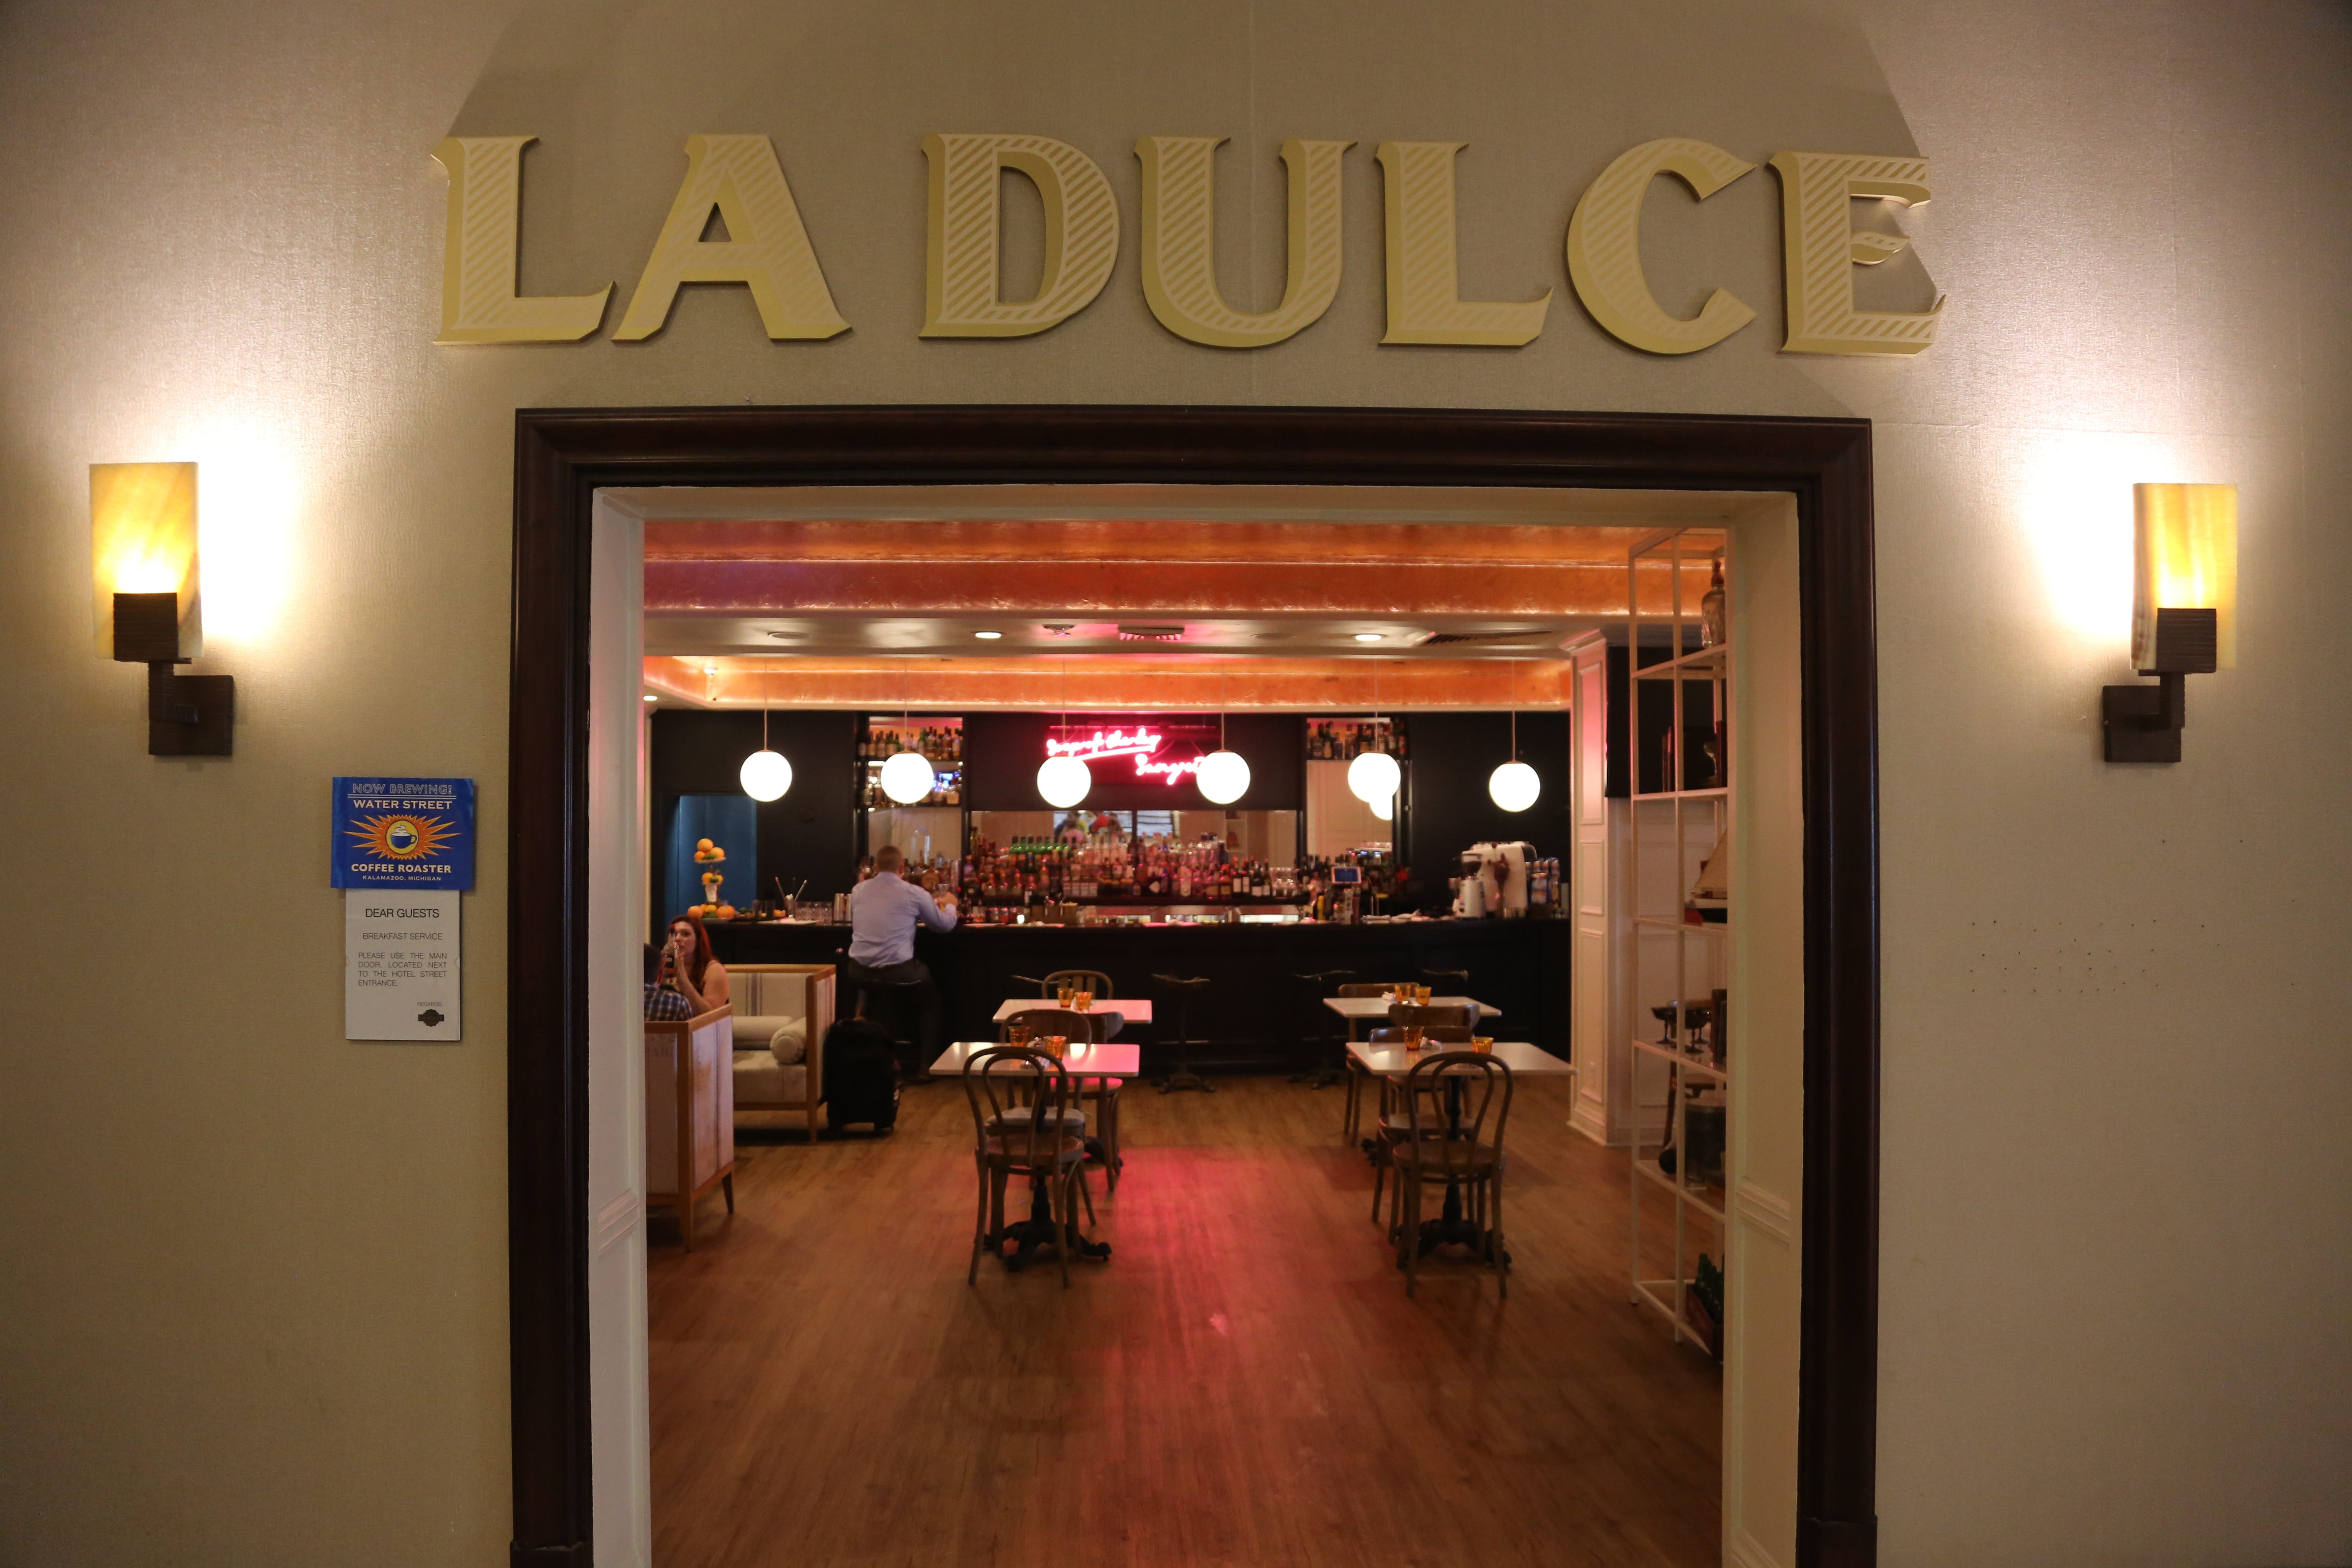 La Dulce restaurant is closing after just five months operating out of the Crowne Plaza Hotel in downtown Detroit.